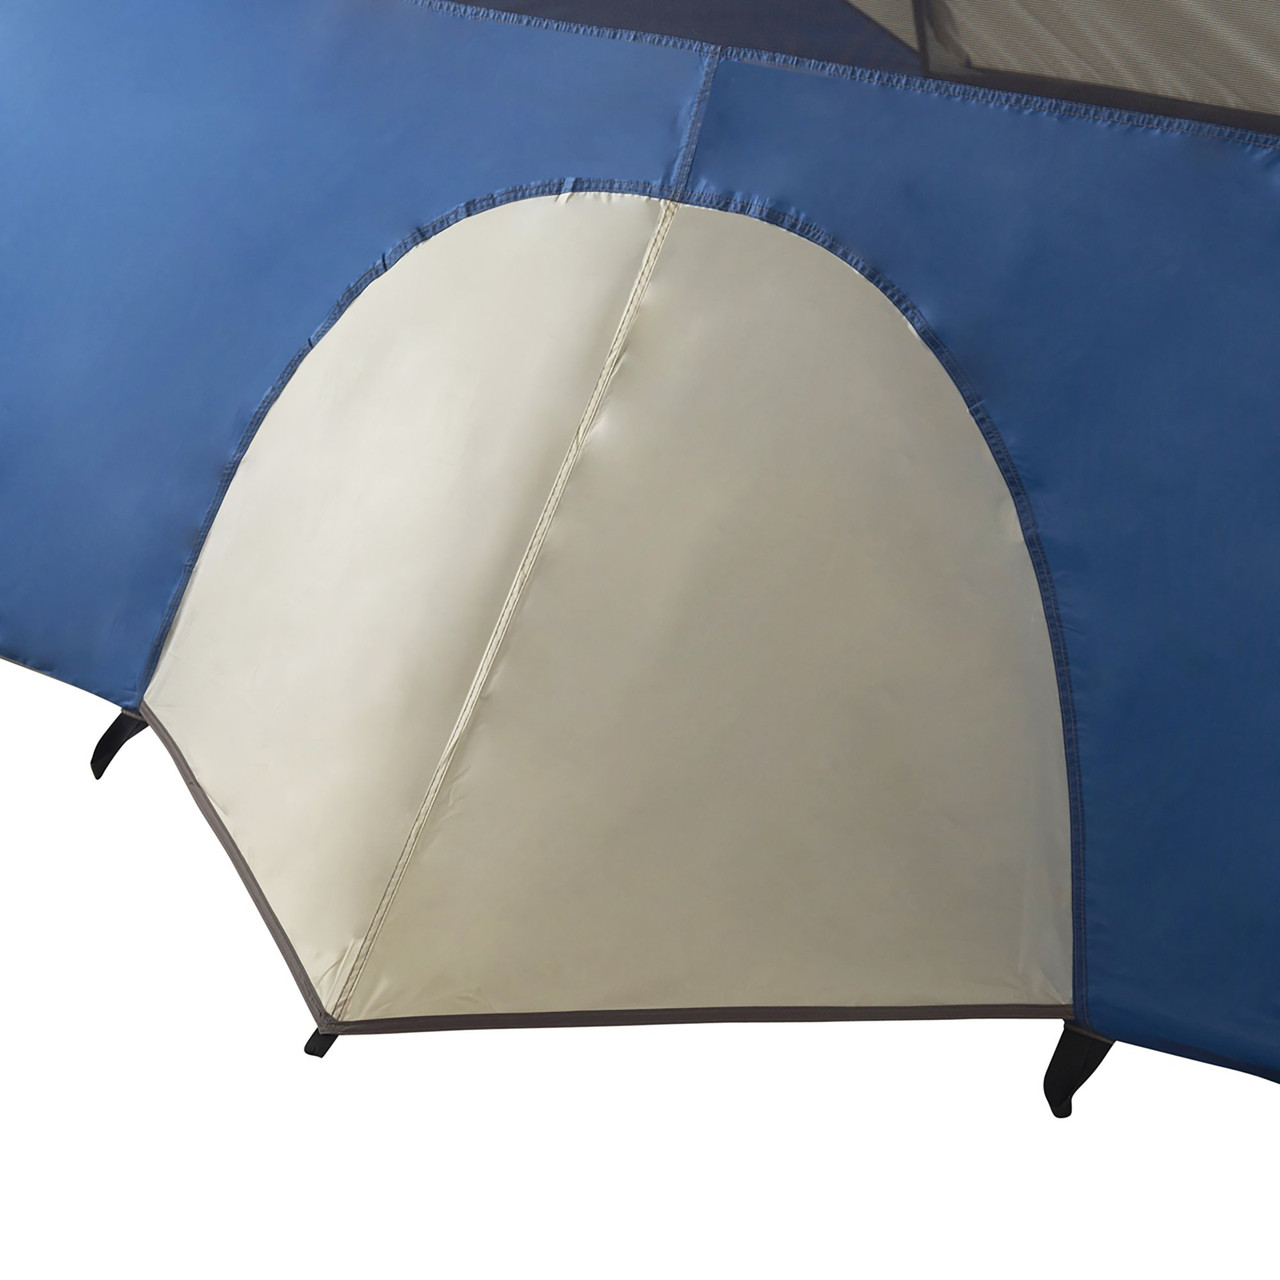 Close up of Wenzel Tamarack 6 Person Dome Tent, showing bottom of tent midpoint